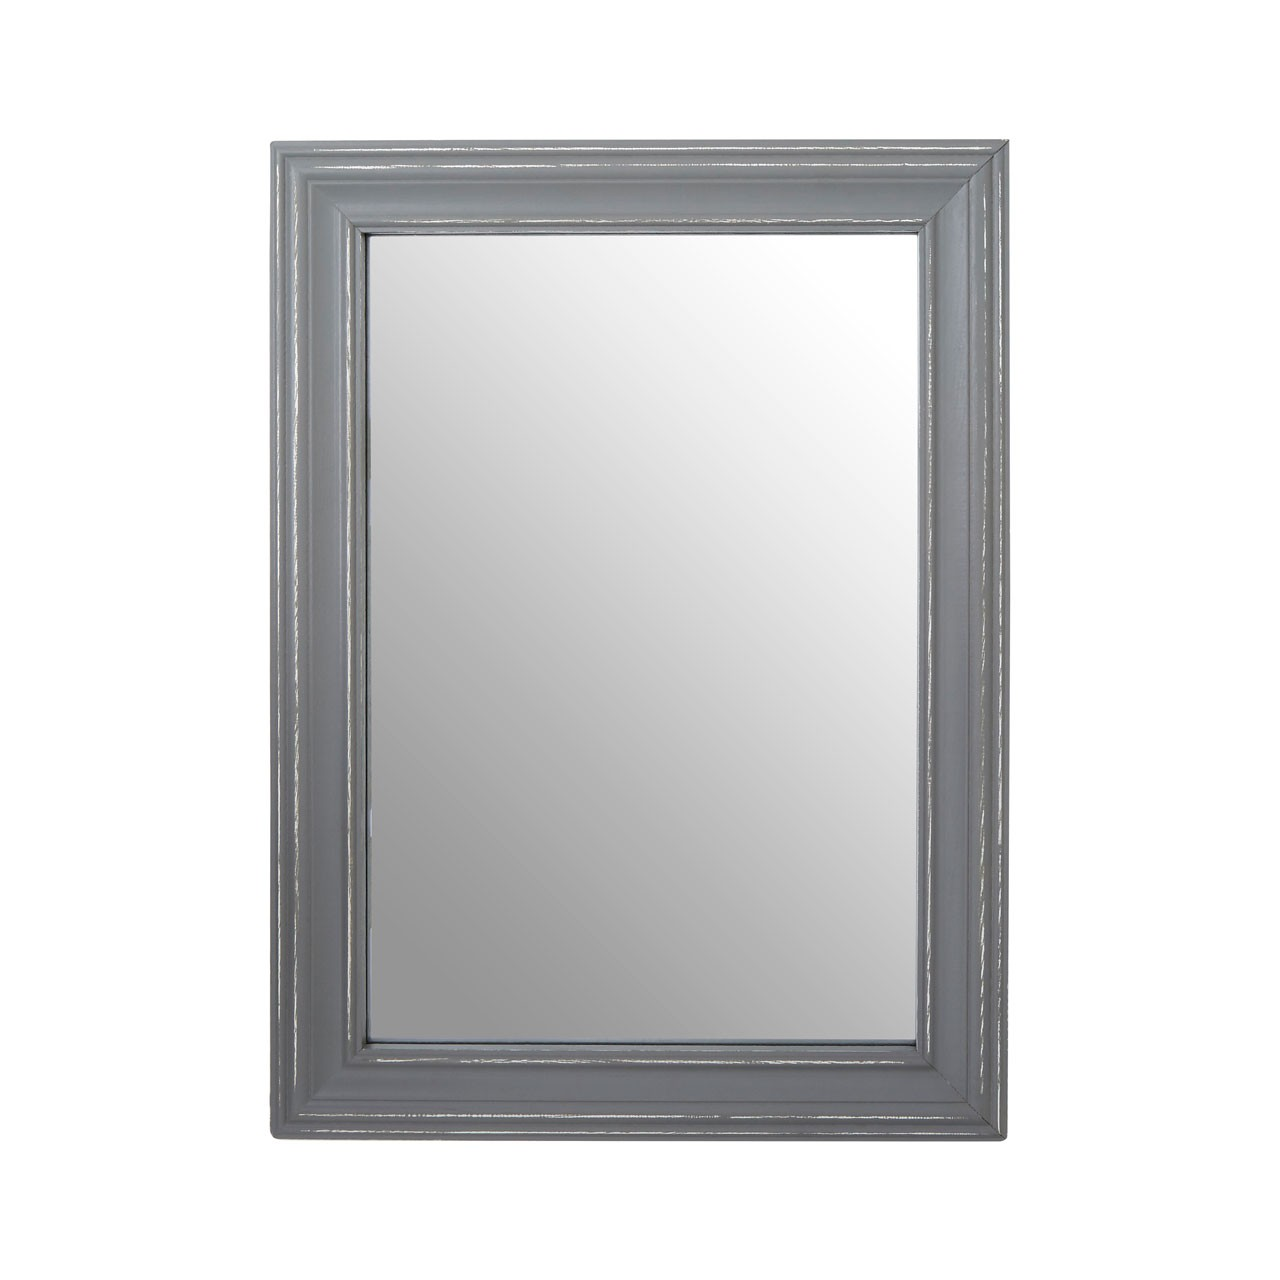 Henley Wall Mirror Antique Grey Wood Frame